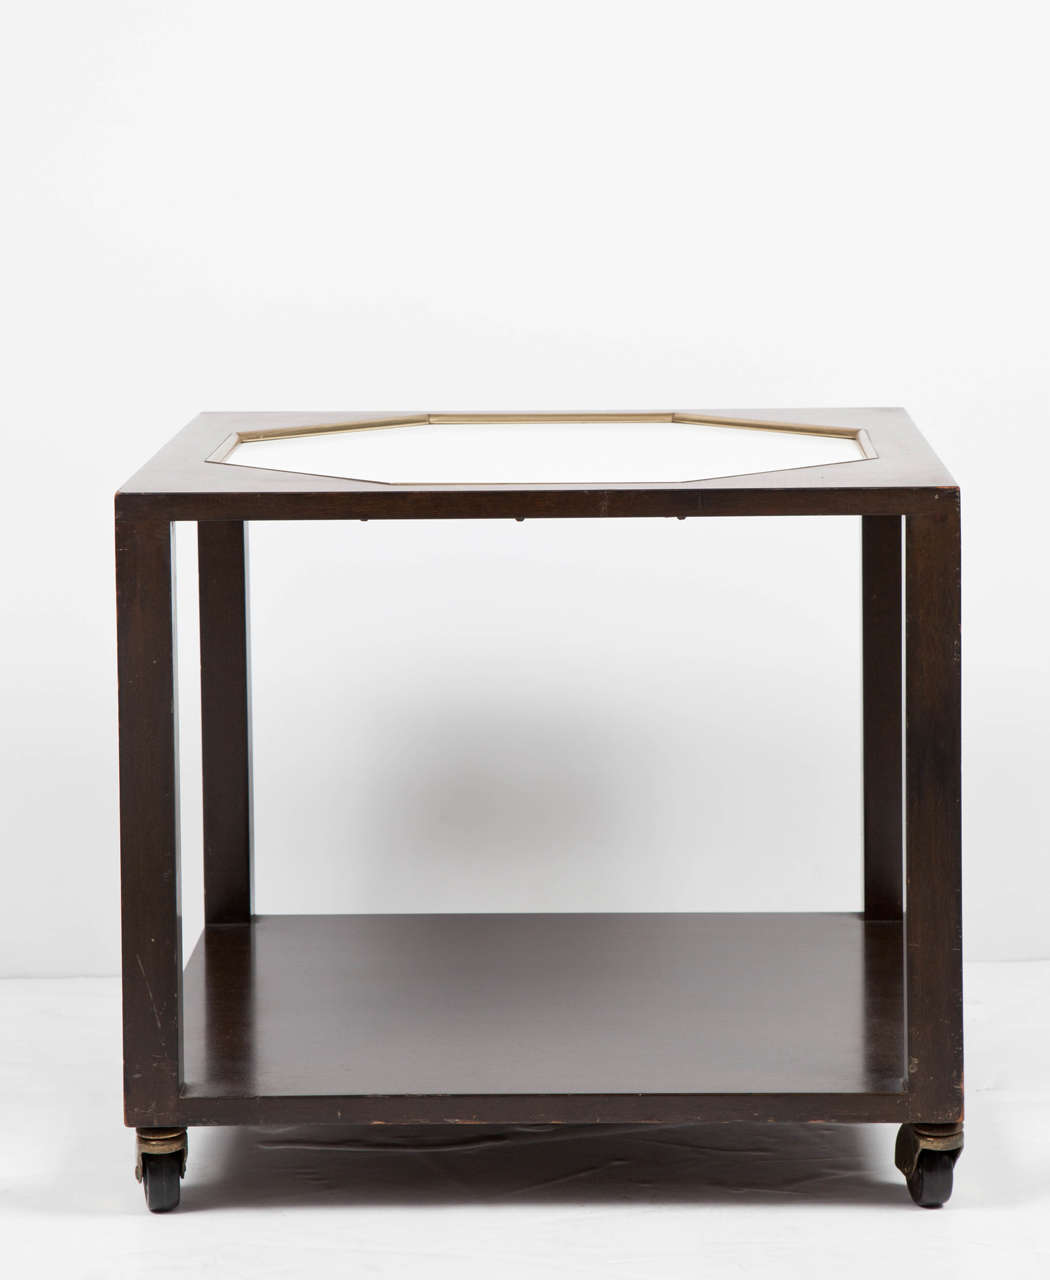 Walnut square-shaped end table with lower shelf, possibly by Harvey Probber. USA, circa 1960. Unsigned. Features a chocolate brown finish with white octagonal inset top with brass trim, complemented by removable casters.